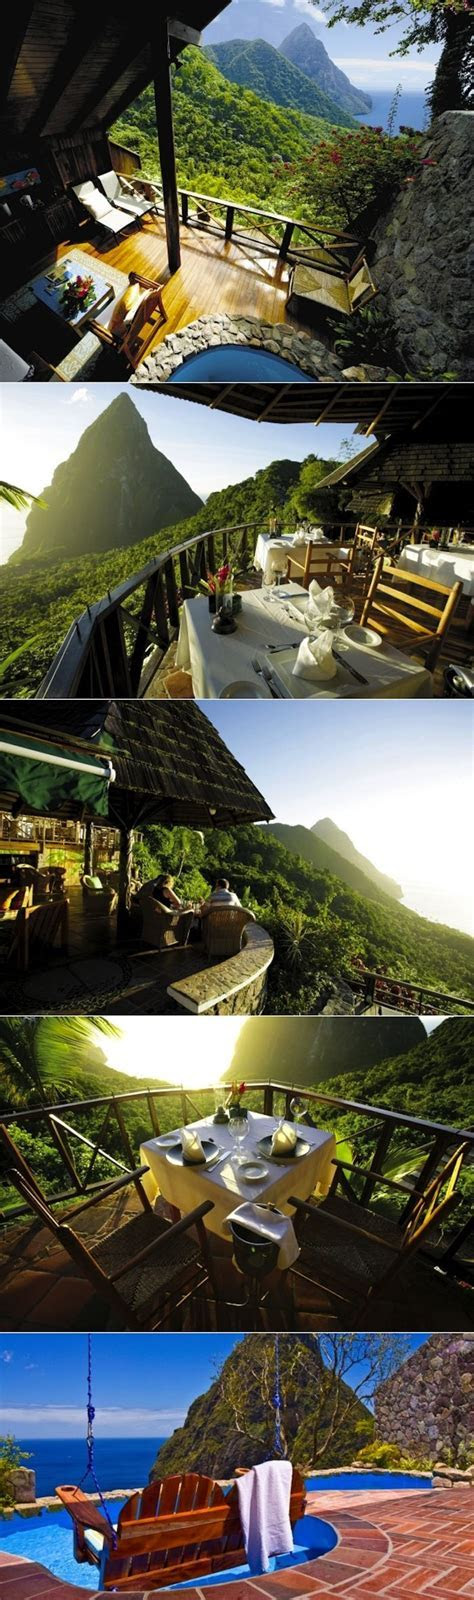 20  best ideas about St Lucia Hotels on Pinterest   Saint